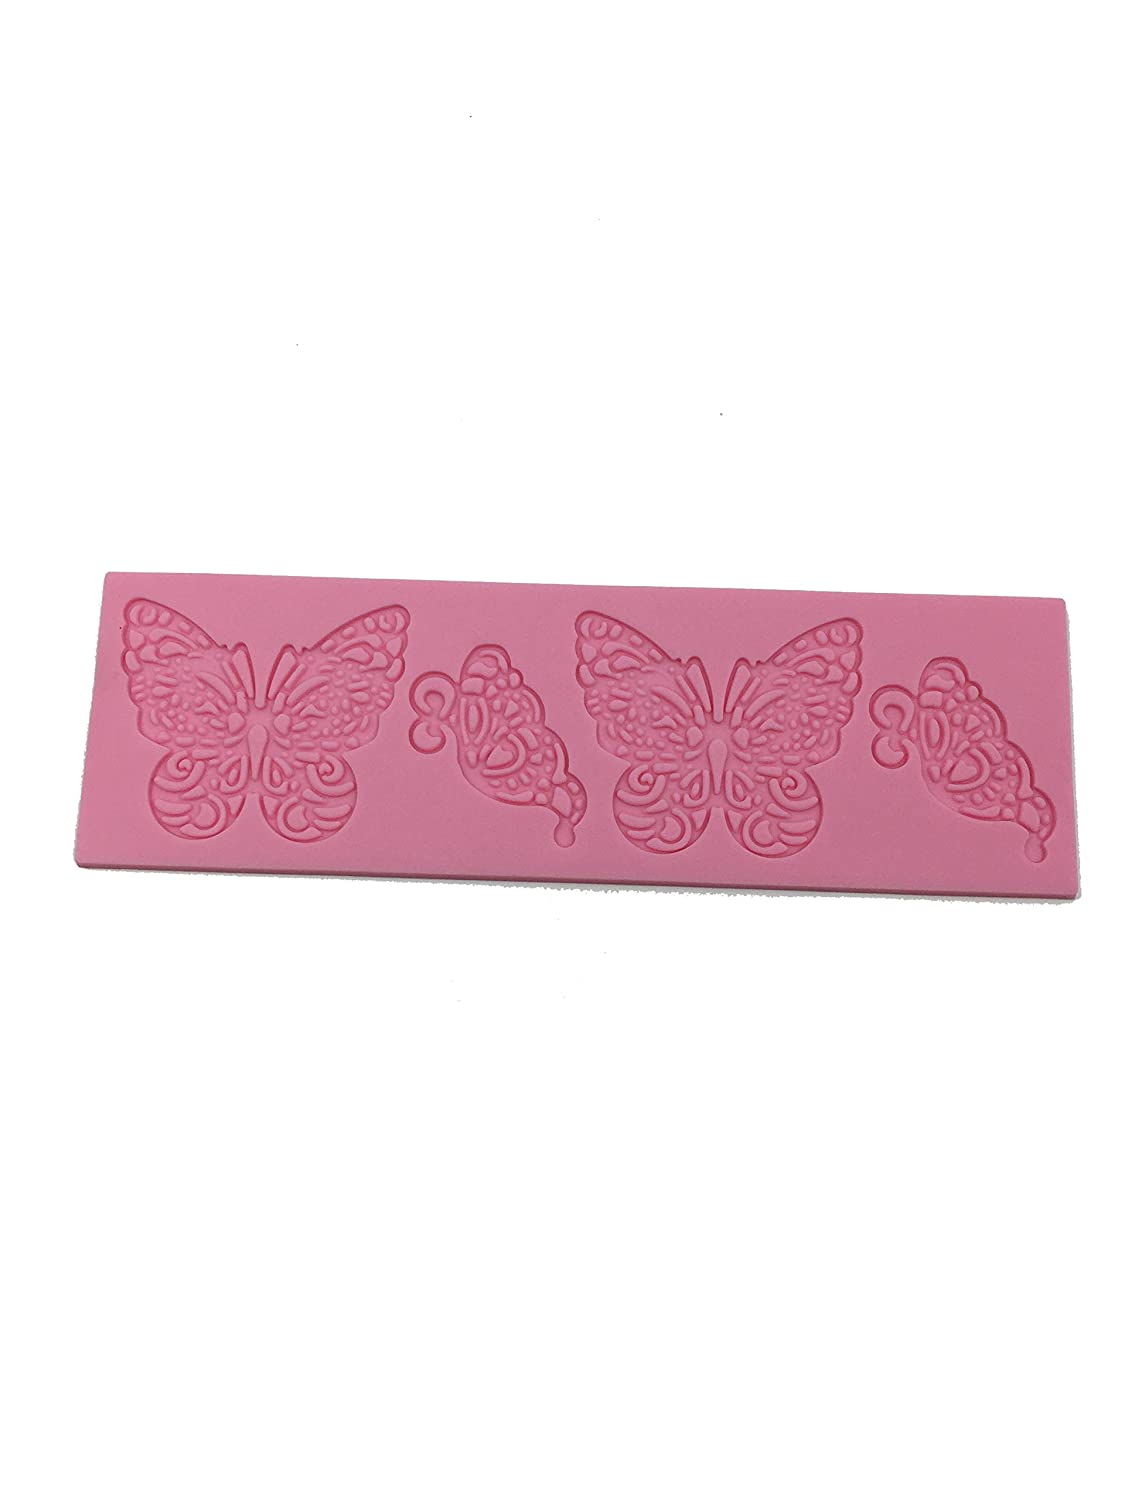 Butterfly Shape Silicone Mold Lace Cake Molds Fondant Tools Cake Decorating Tools Silicone Chocolate Icing Border Sugar Mold XXWG #FF25